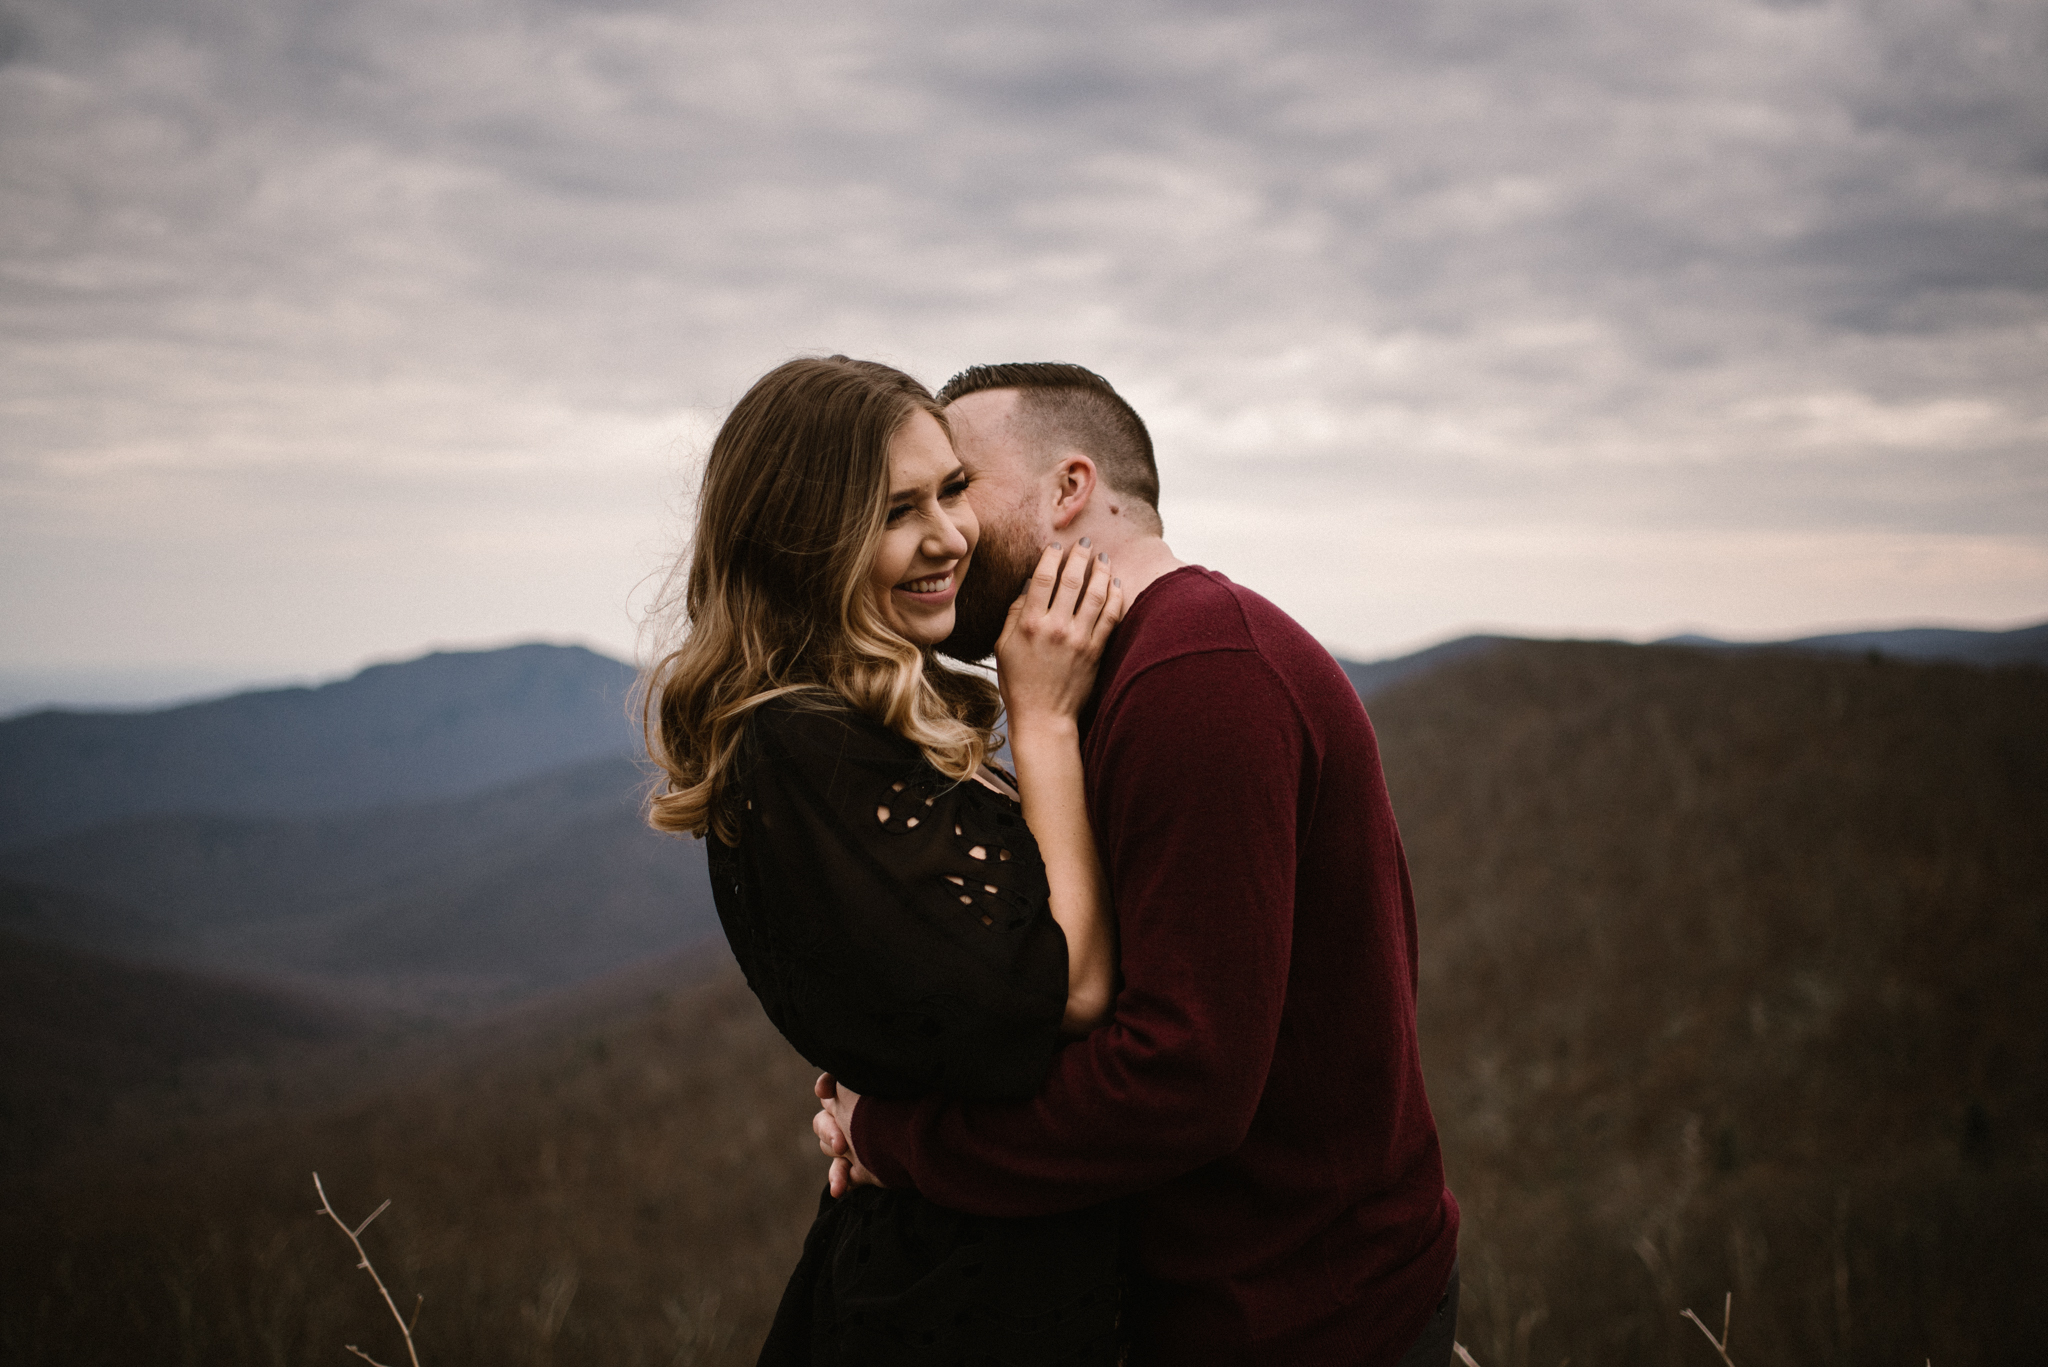 Nicole and Victor - Shenandoah National Park Engagement Photography - Blue Ridge Mountains Adventure Photography - White Sails Creative Photography_12.jpg